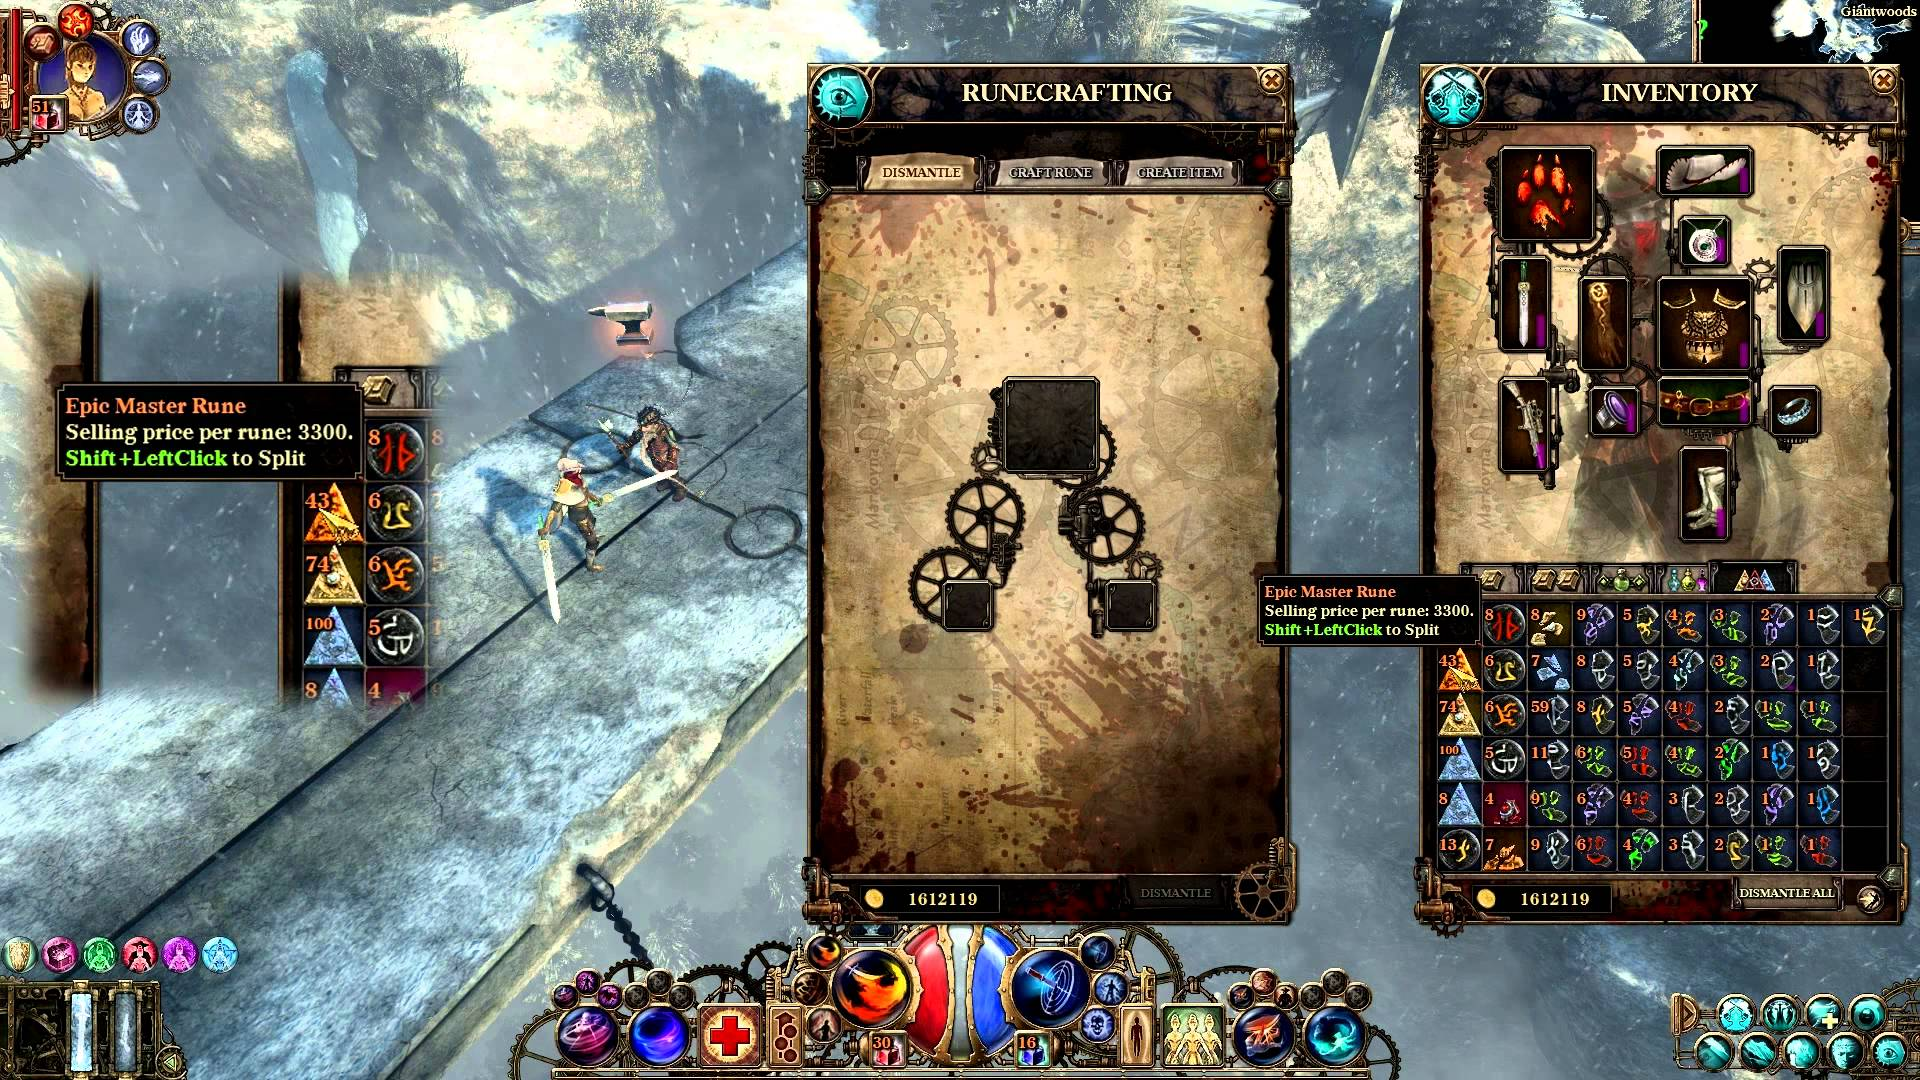 New Runecrafting System revealed for The Incredible Adventures of Van Helsing 2